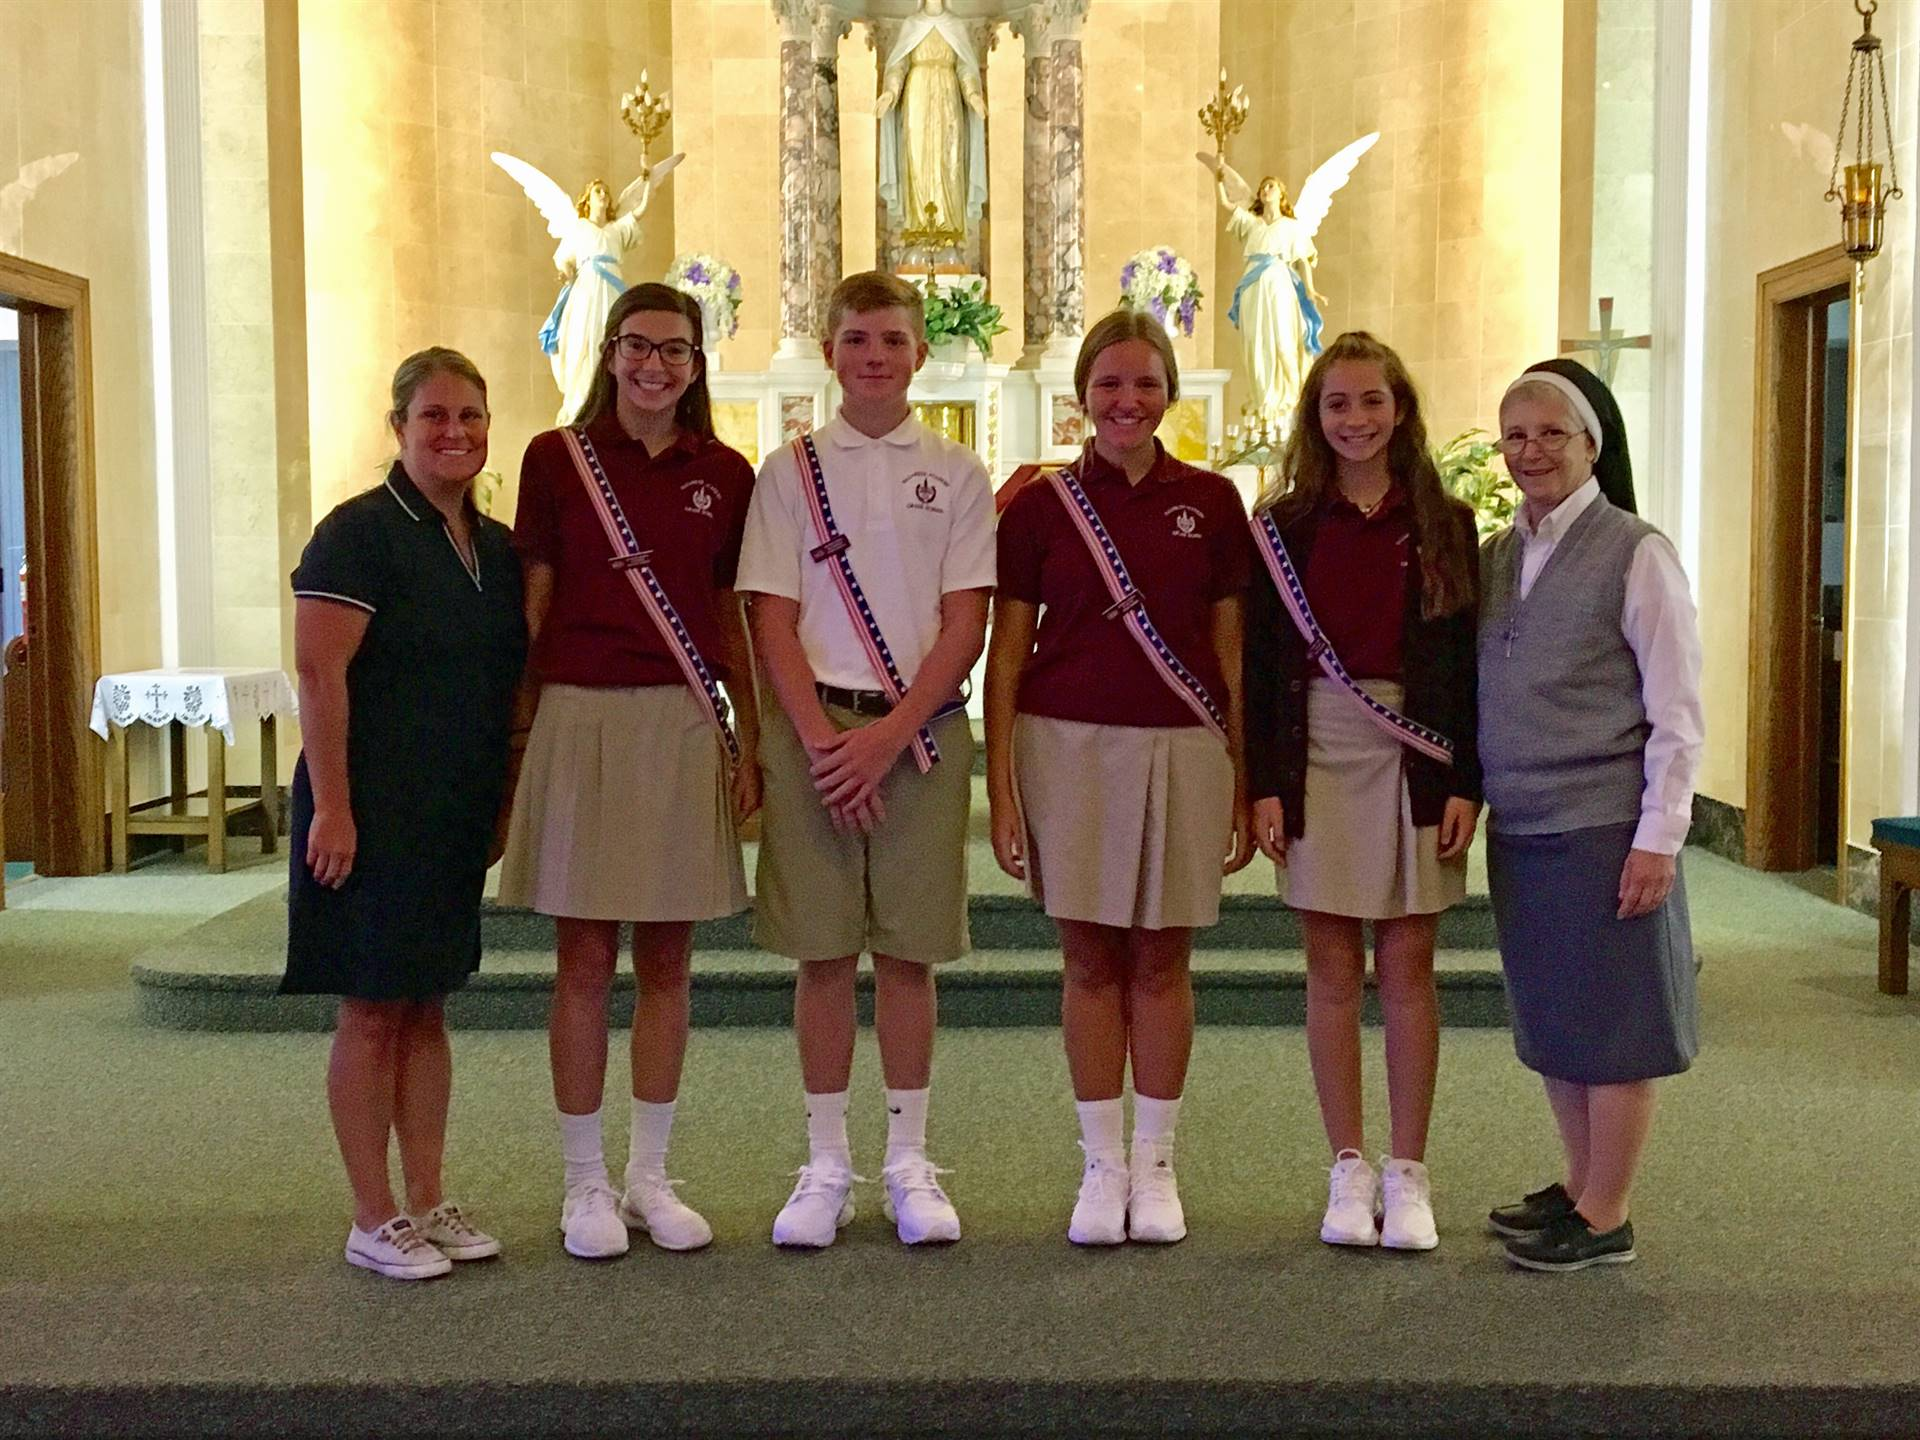 Student Council officers, Moderator Mrs. Fox and Principal Sister Linda